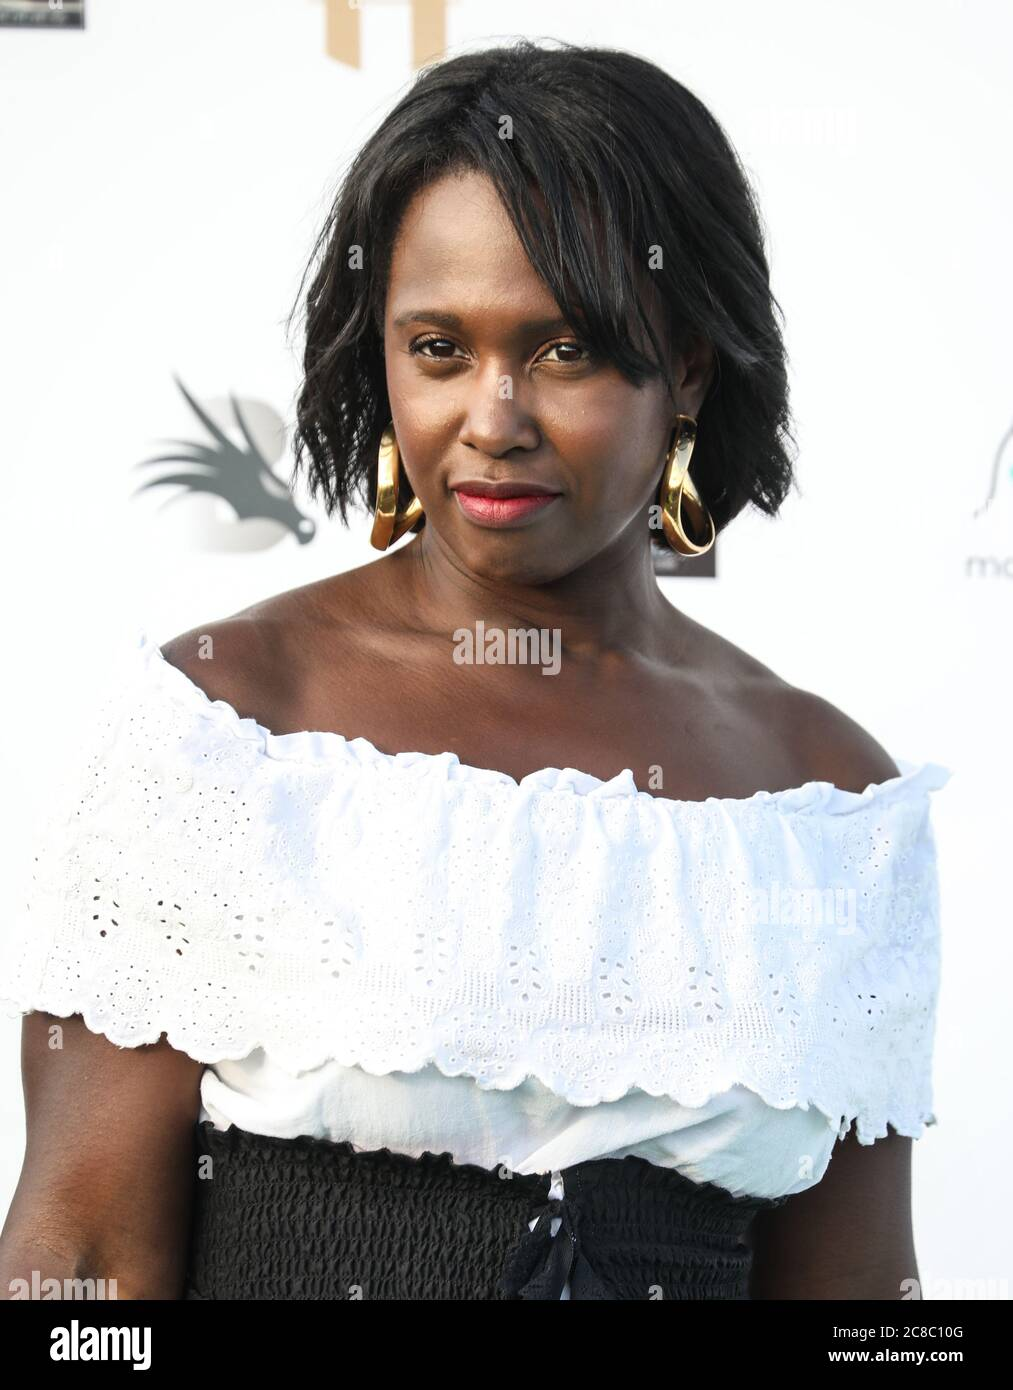 Michelle Gayle High Resolution Stock Photography and ...